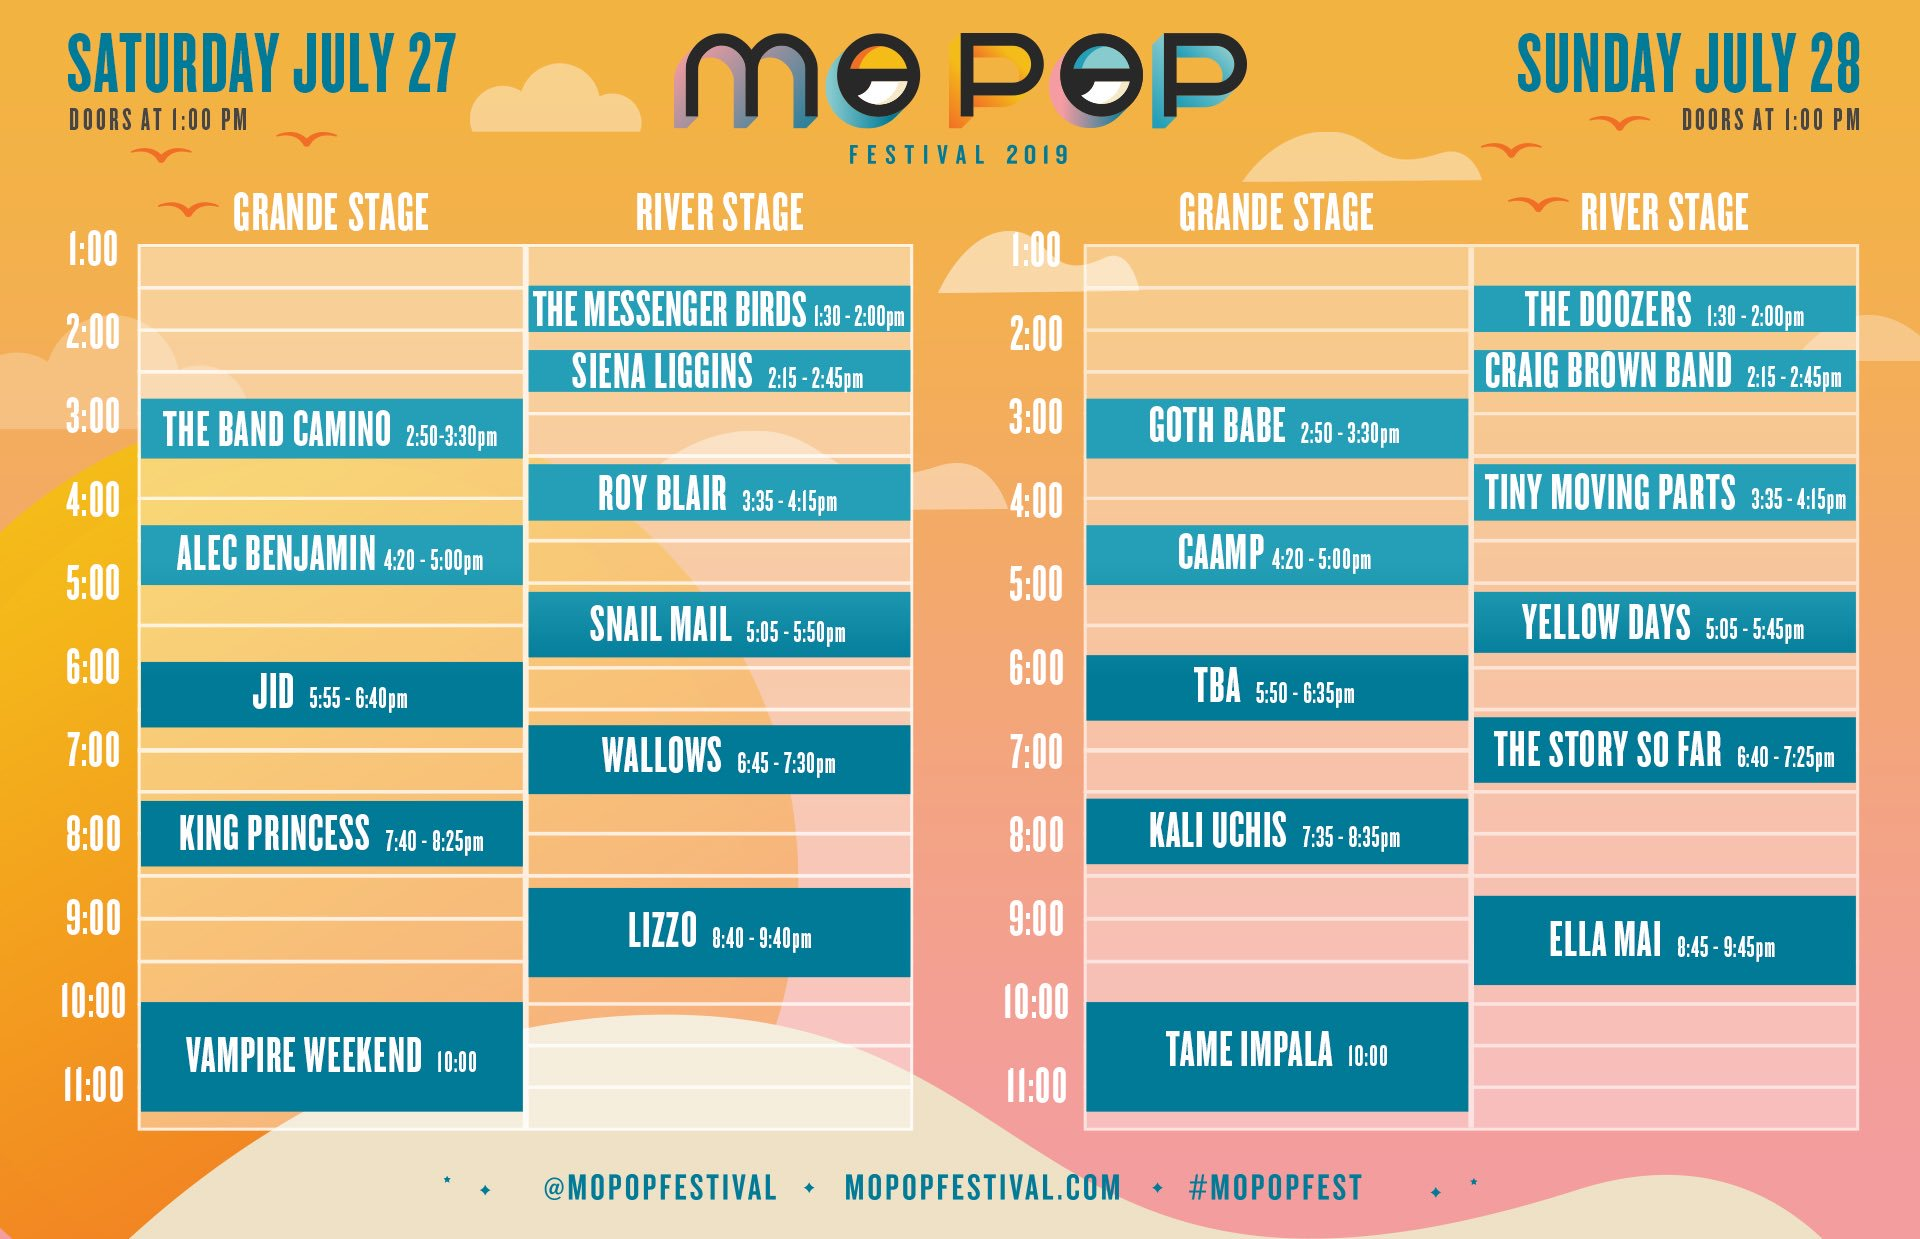 2019 Mo Pop Festival schedule for the weekend